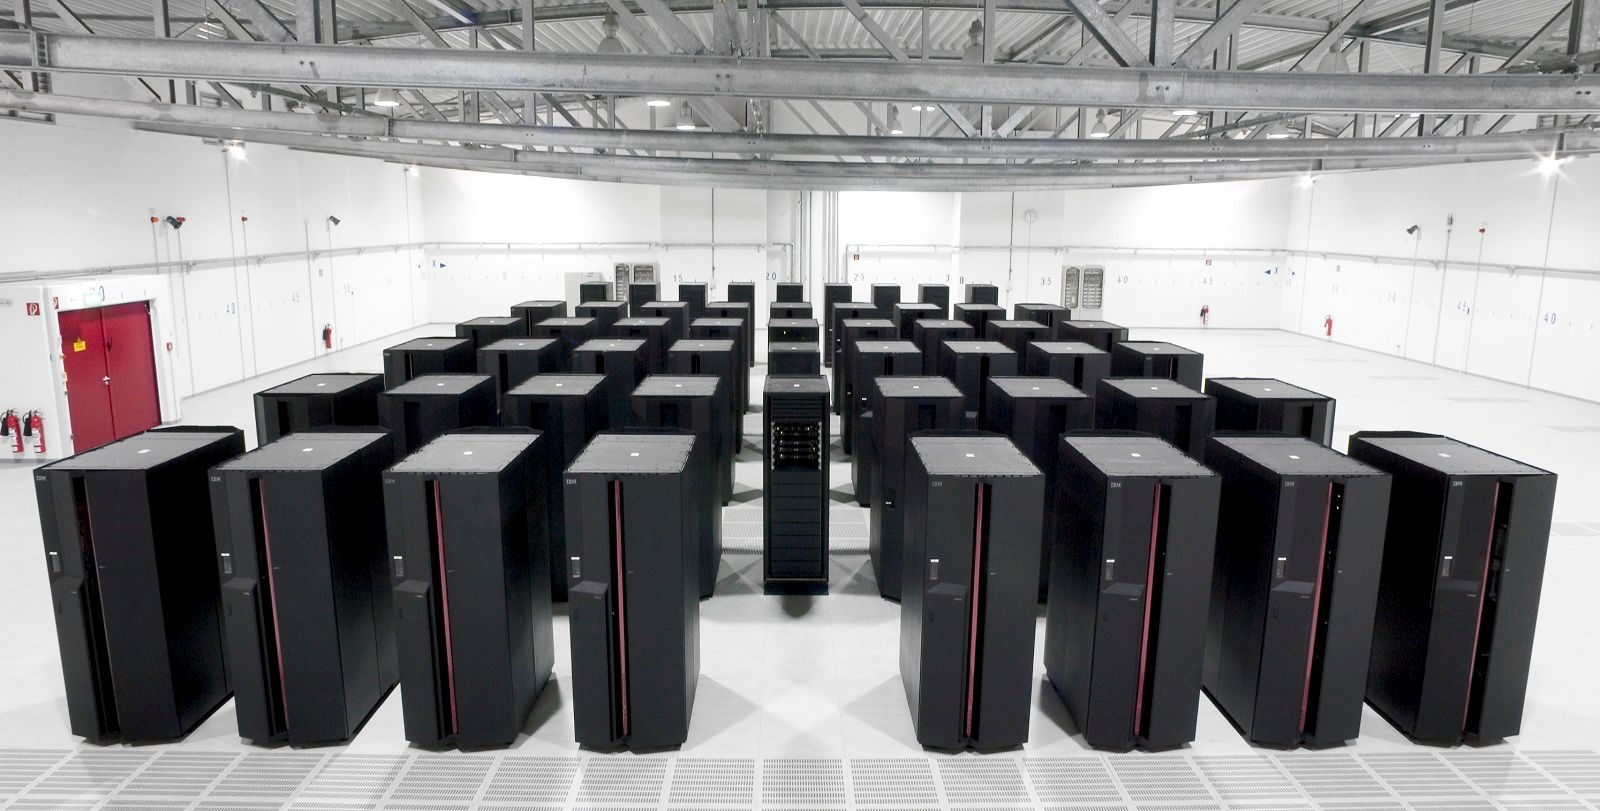 The 10 Most Expensive Super Computers